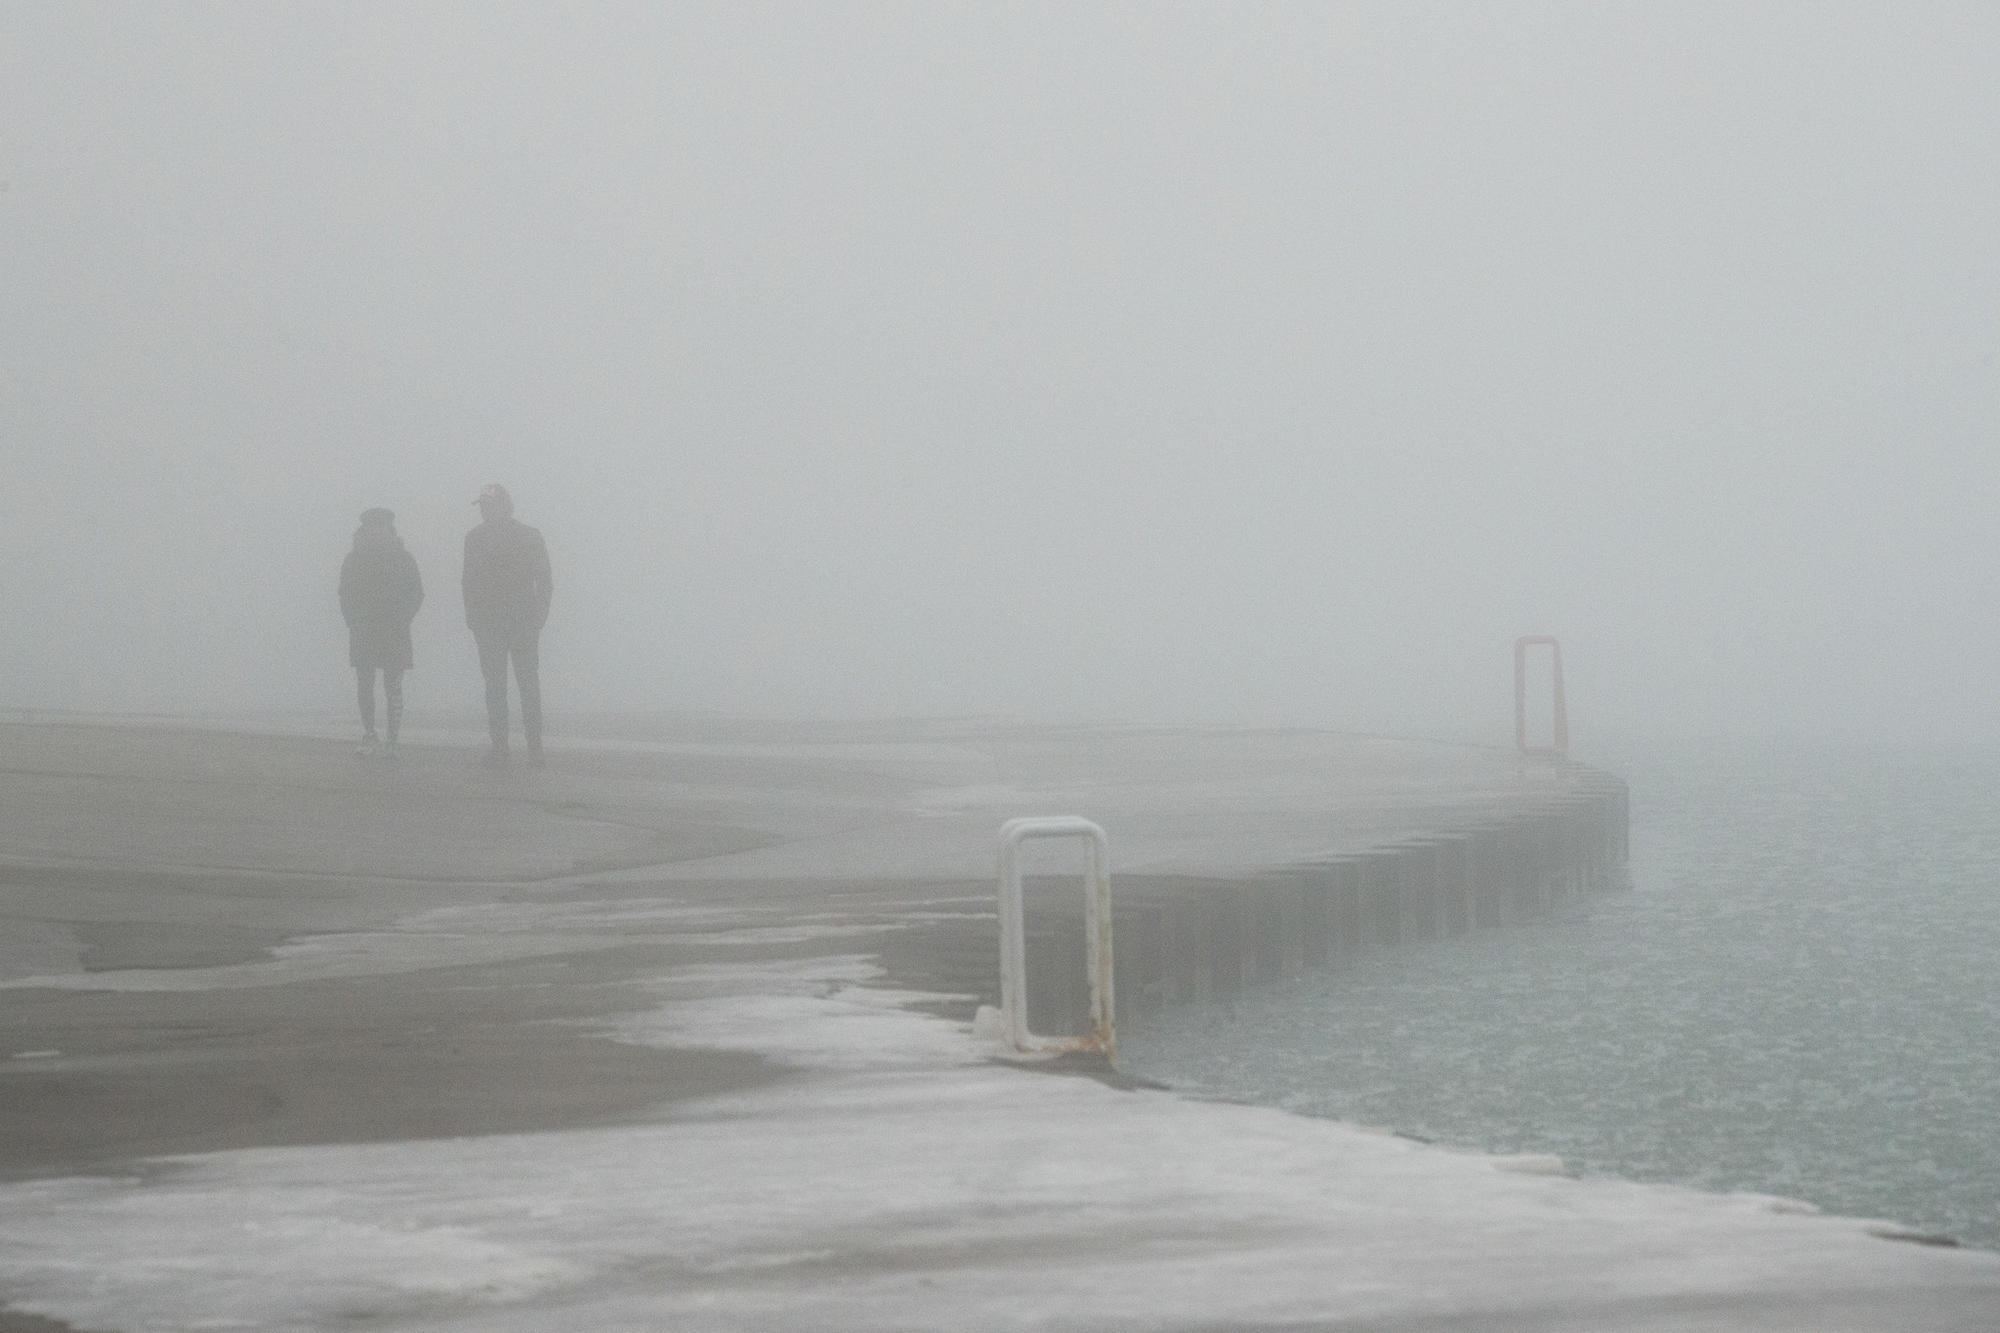 dense fog advisory issued for chicago area motorists urged to use